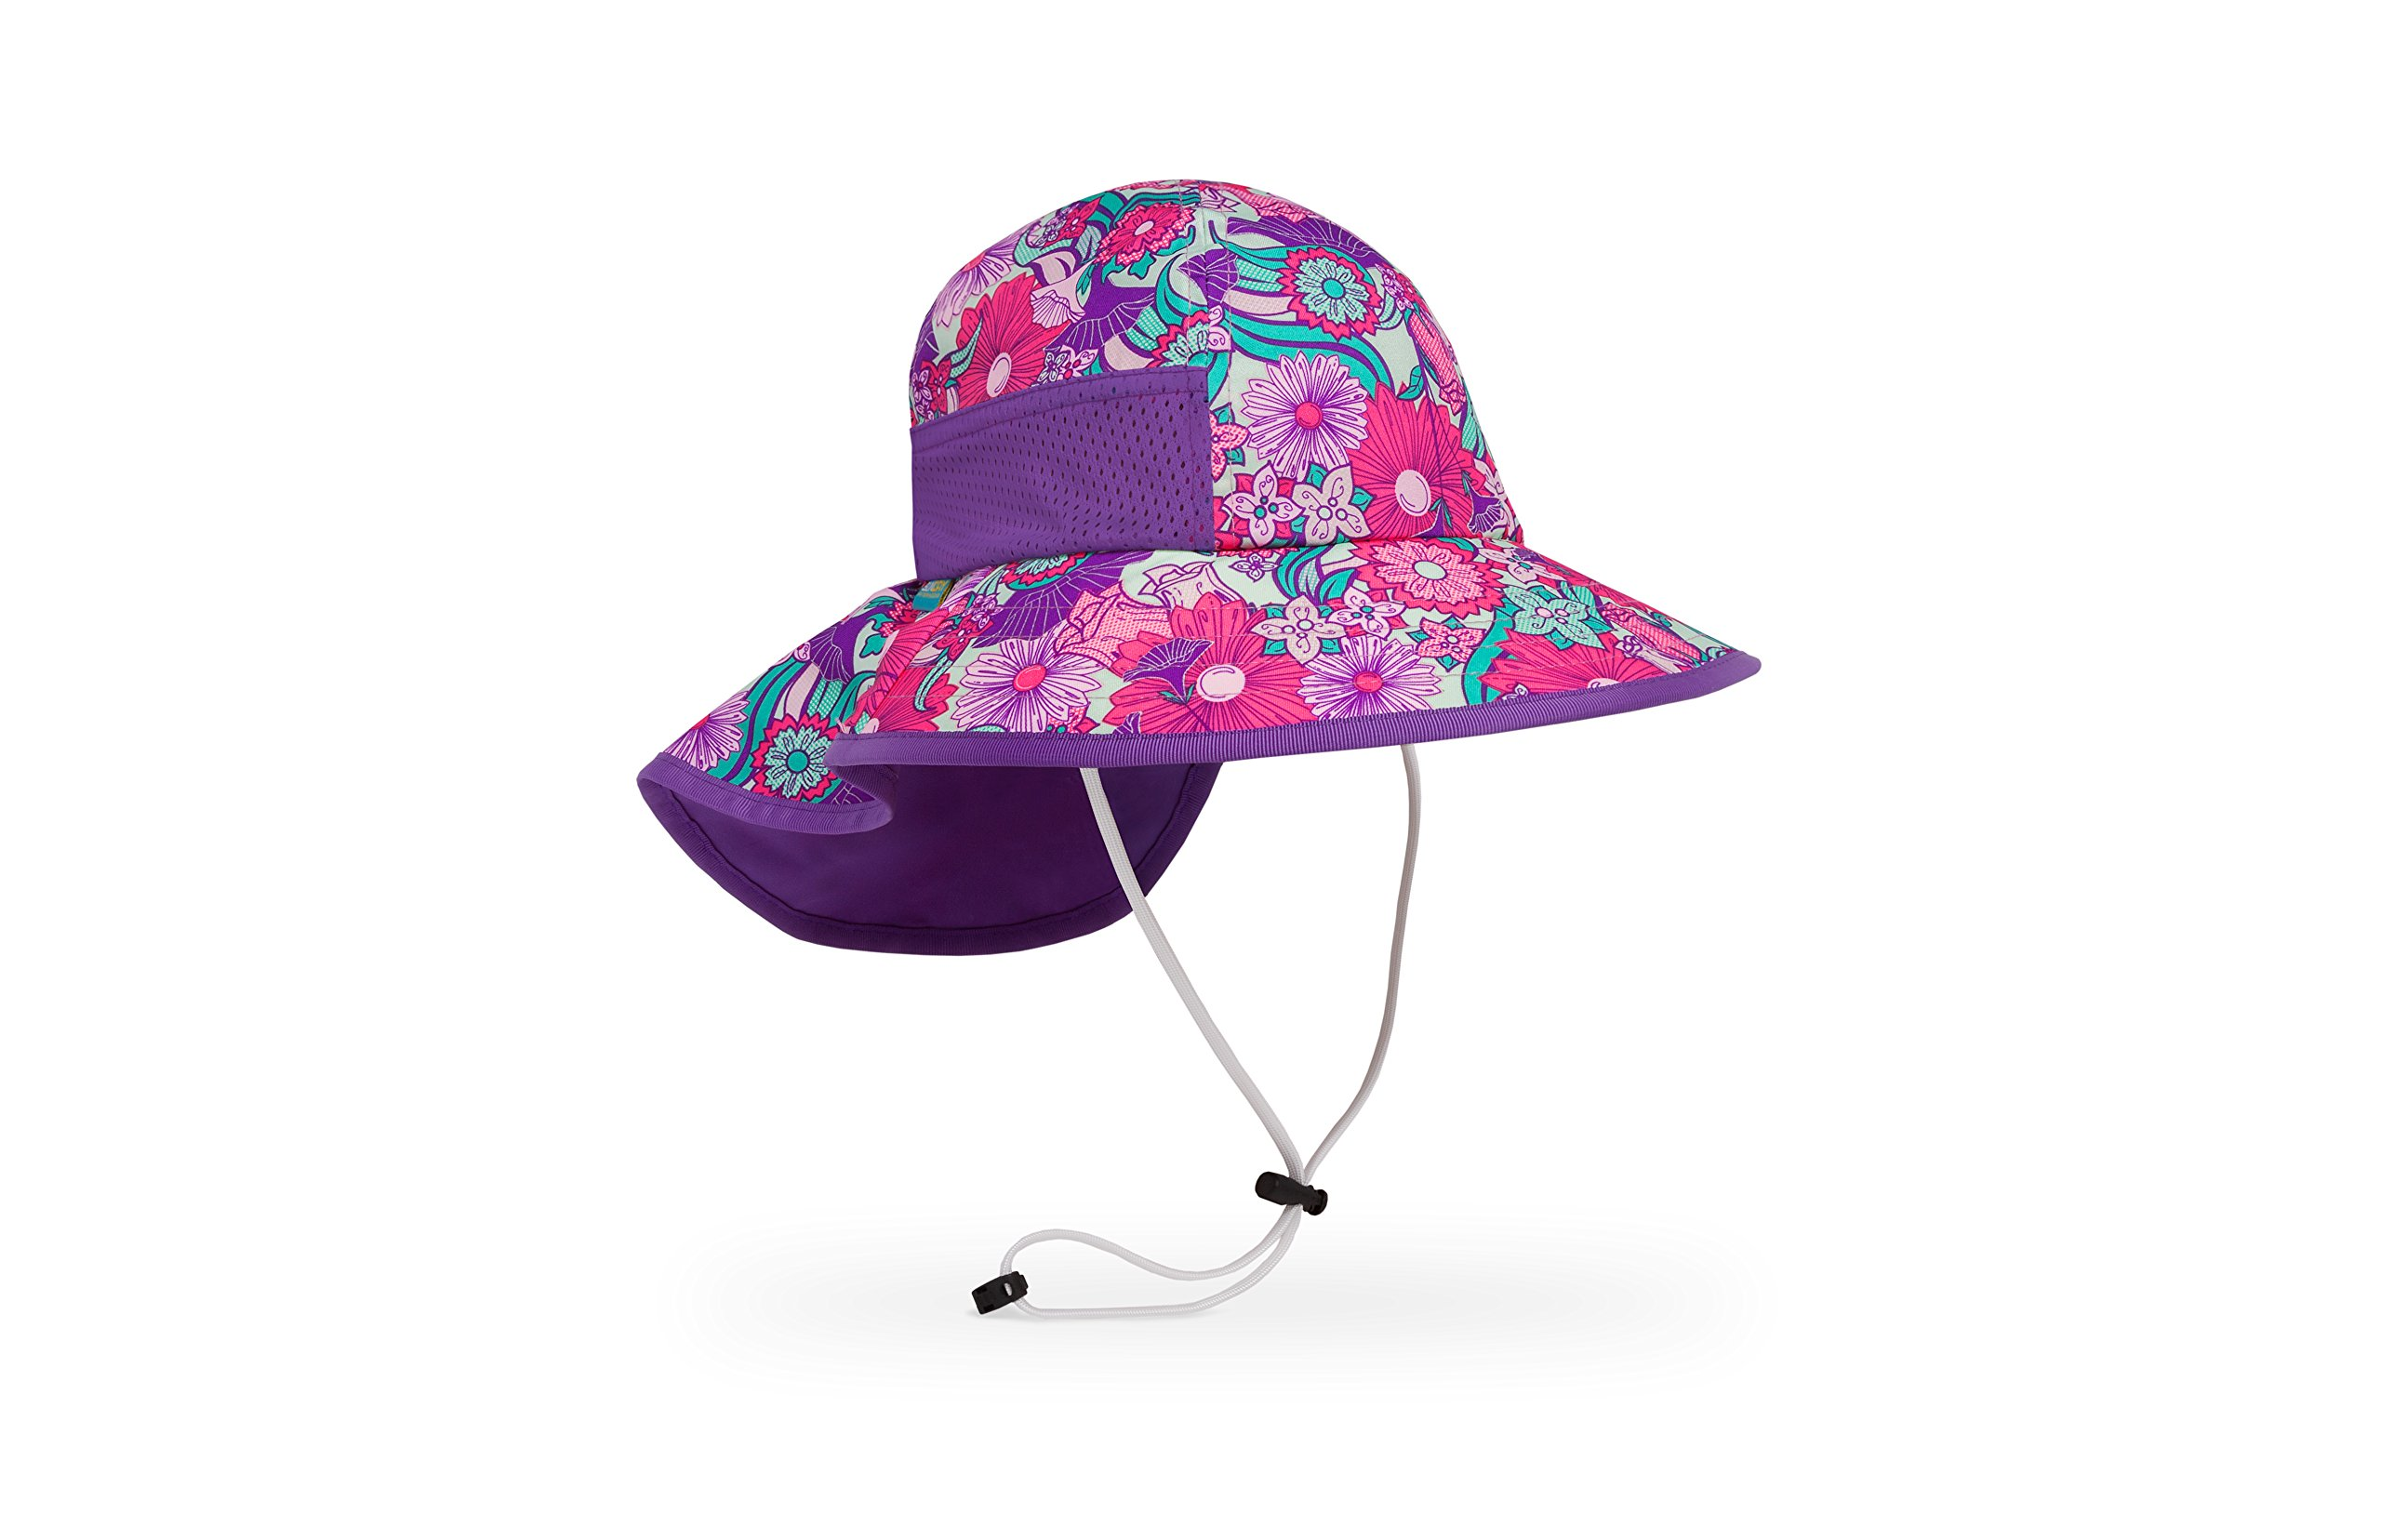 Sunday Afternoons Kids Play Hat, Flower Garden, Small